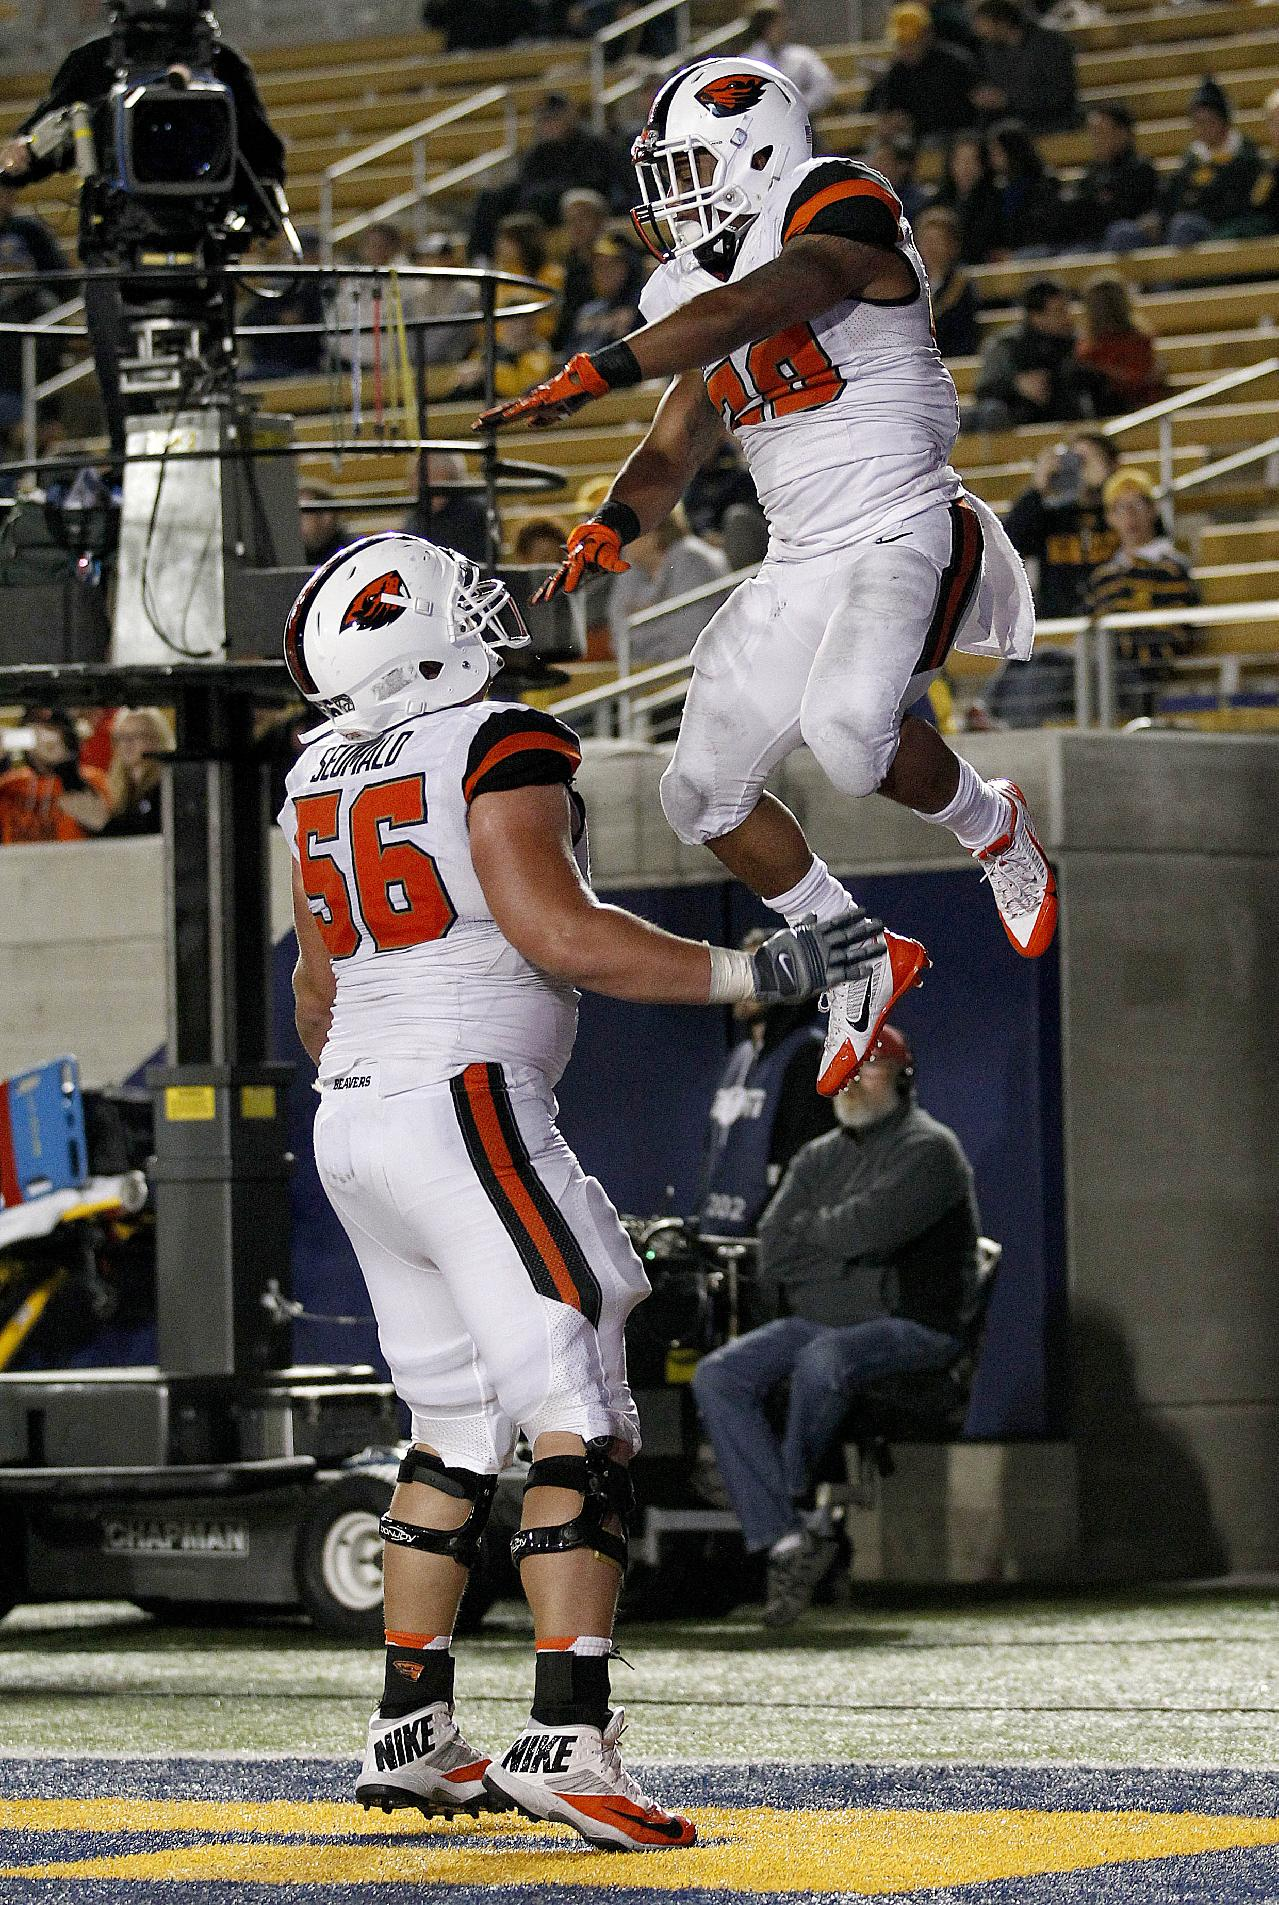 Oregon State running back Terron Ward (28) celebrates with teammate Isaac Seumalo (56) after scoring a touchdown against California during the second half of an NCAA college football game in Berkeley, Calif., Saturday, Oct. 19, 2013. Oregon State won 49-17